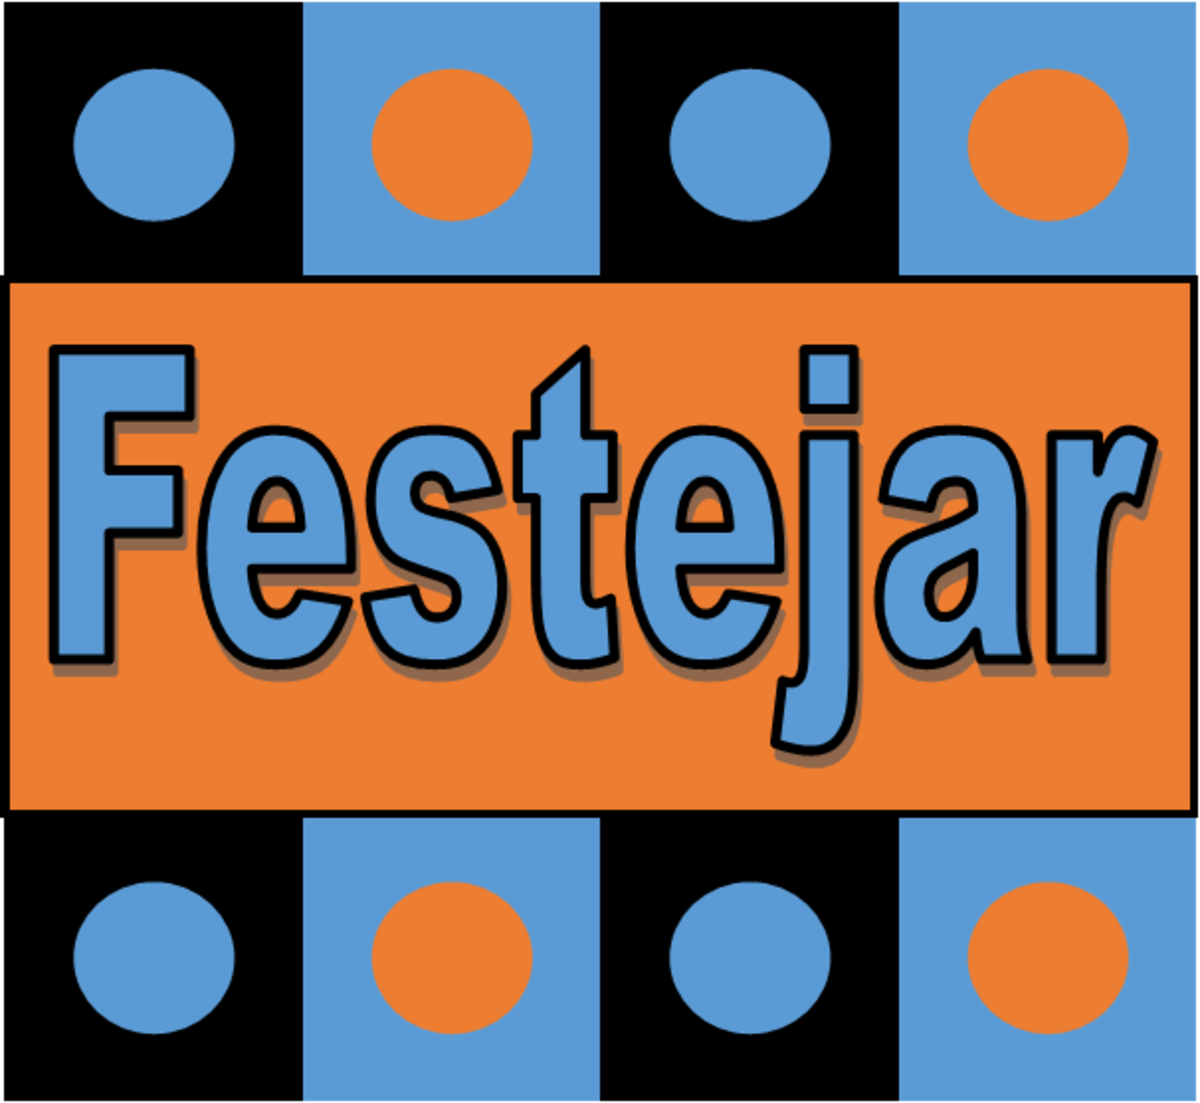 Festejar = to party